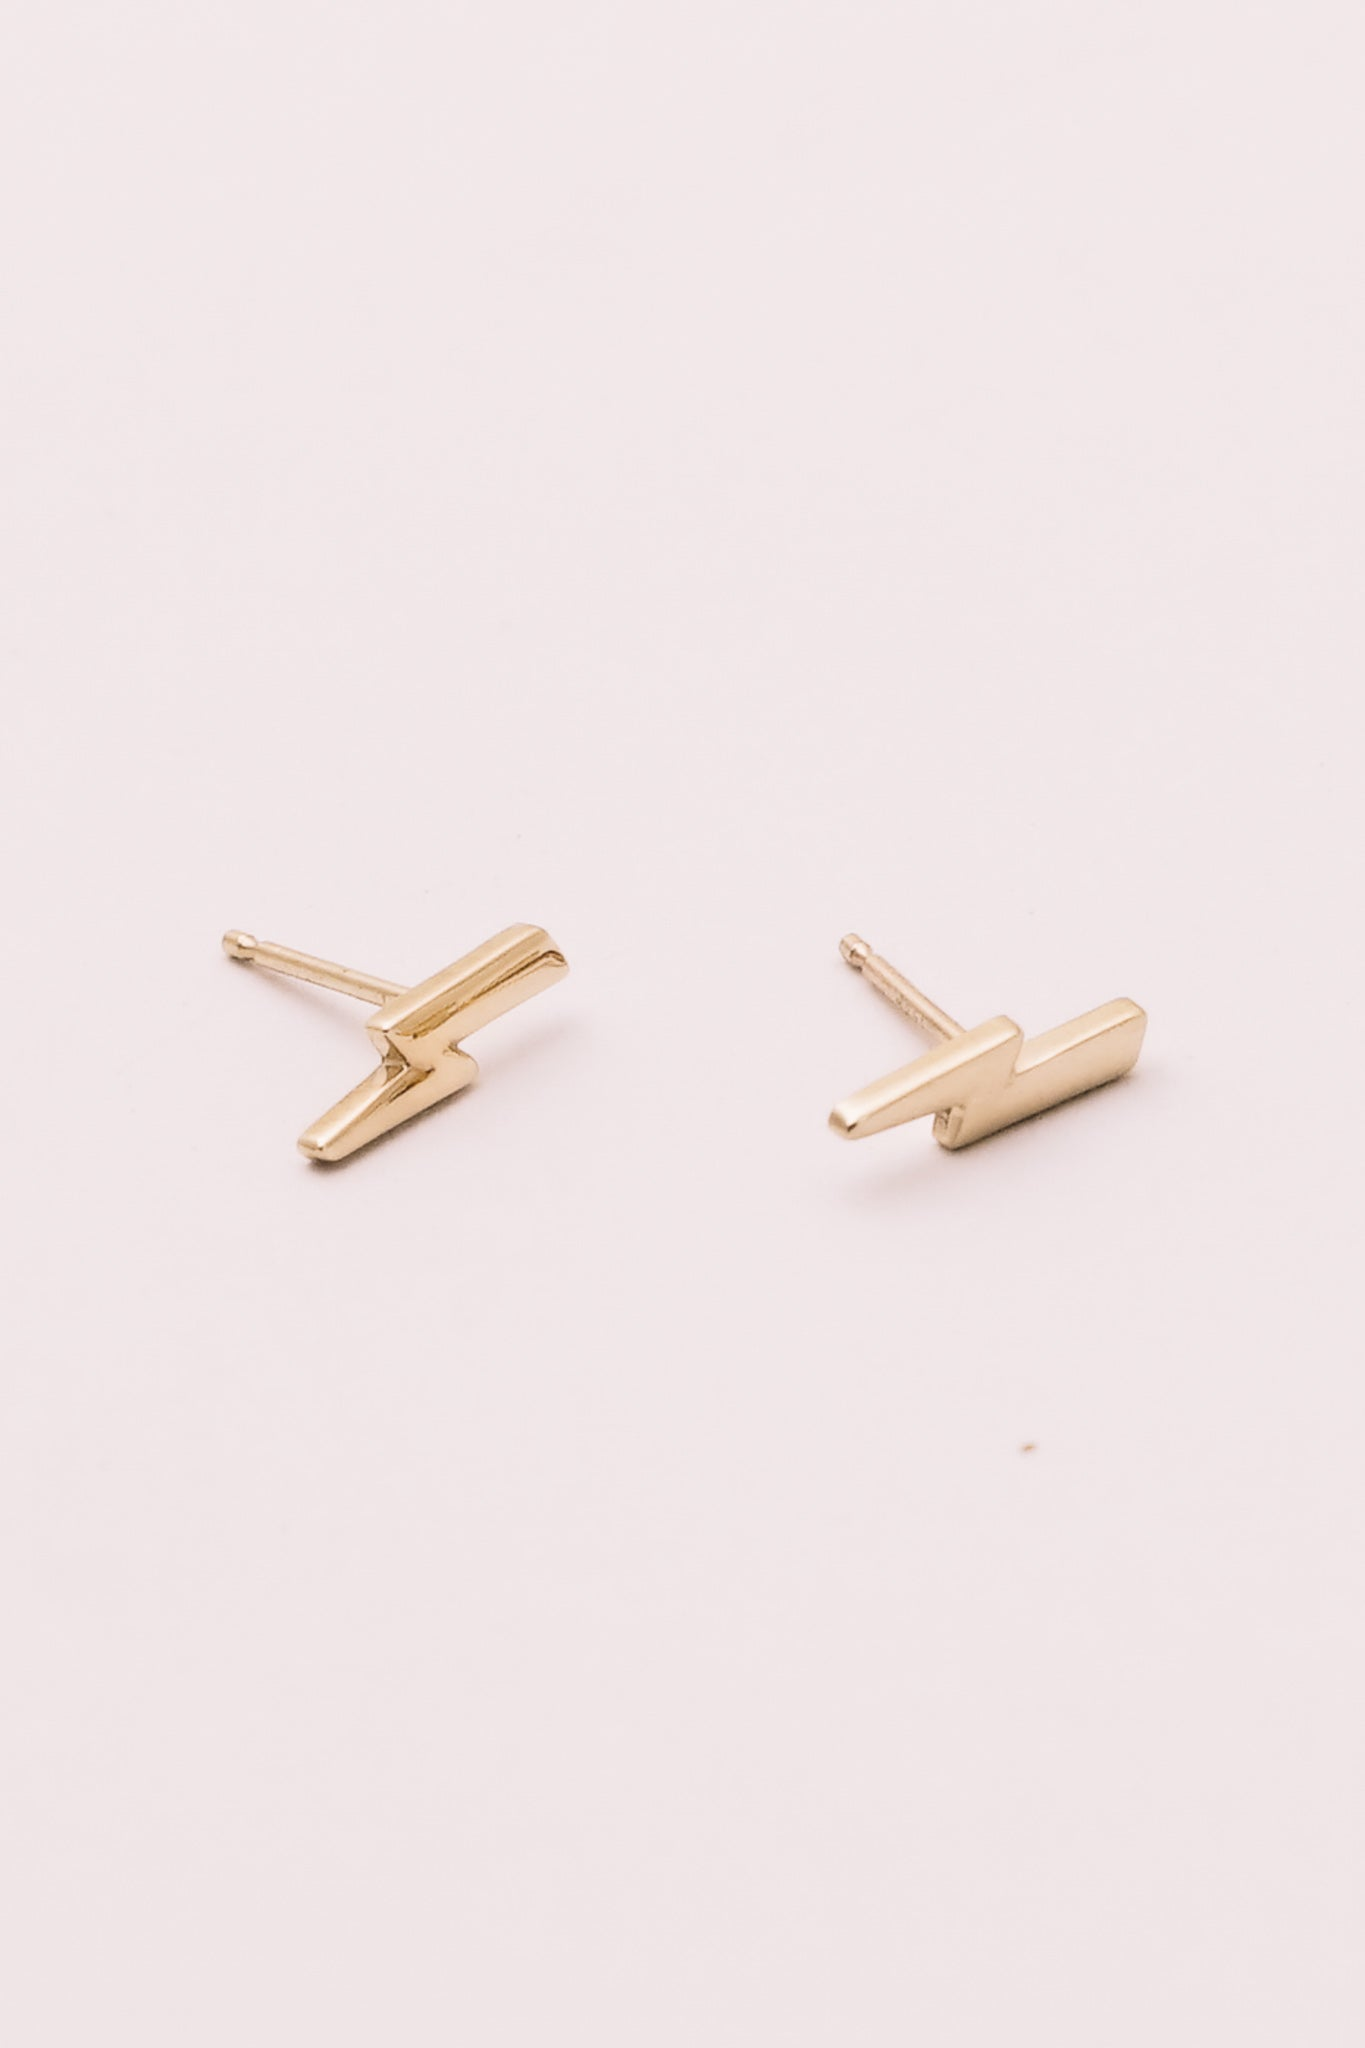 14k gold lightening bolt stud earrings